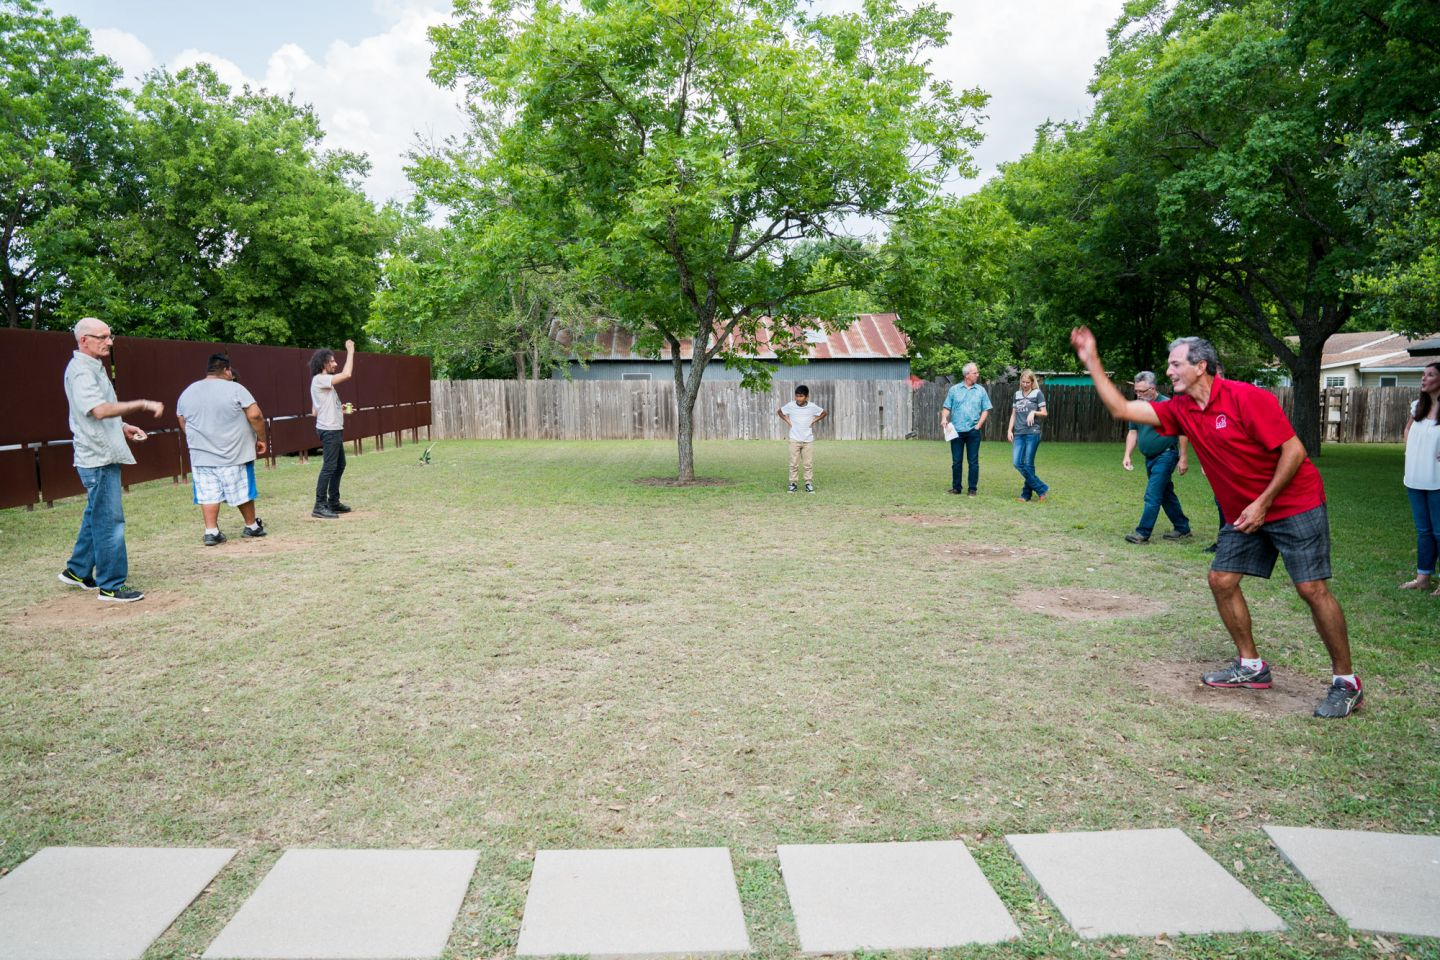 CG&S Employees in Group Activity